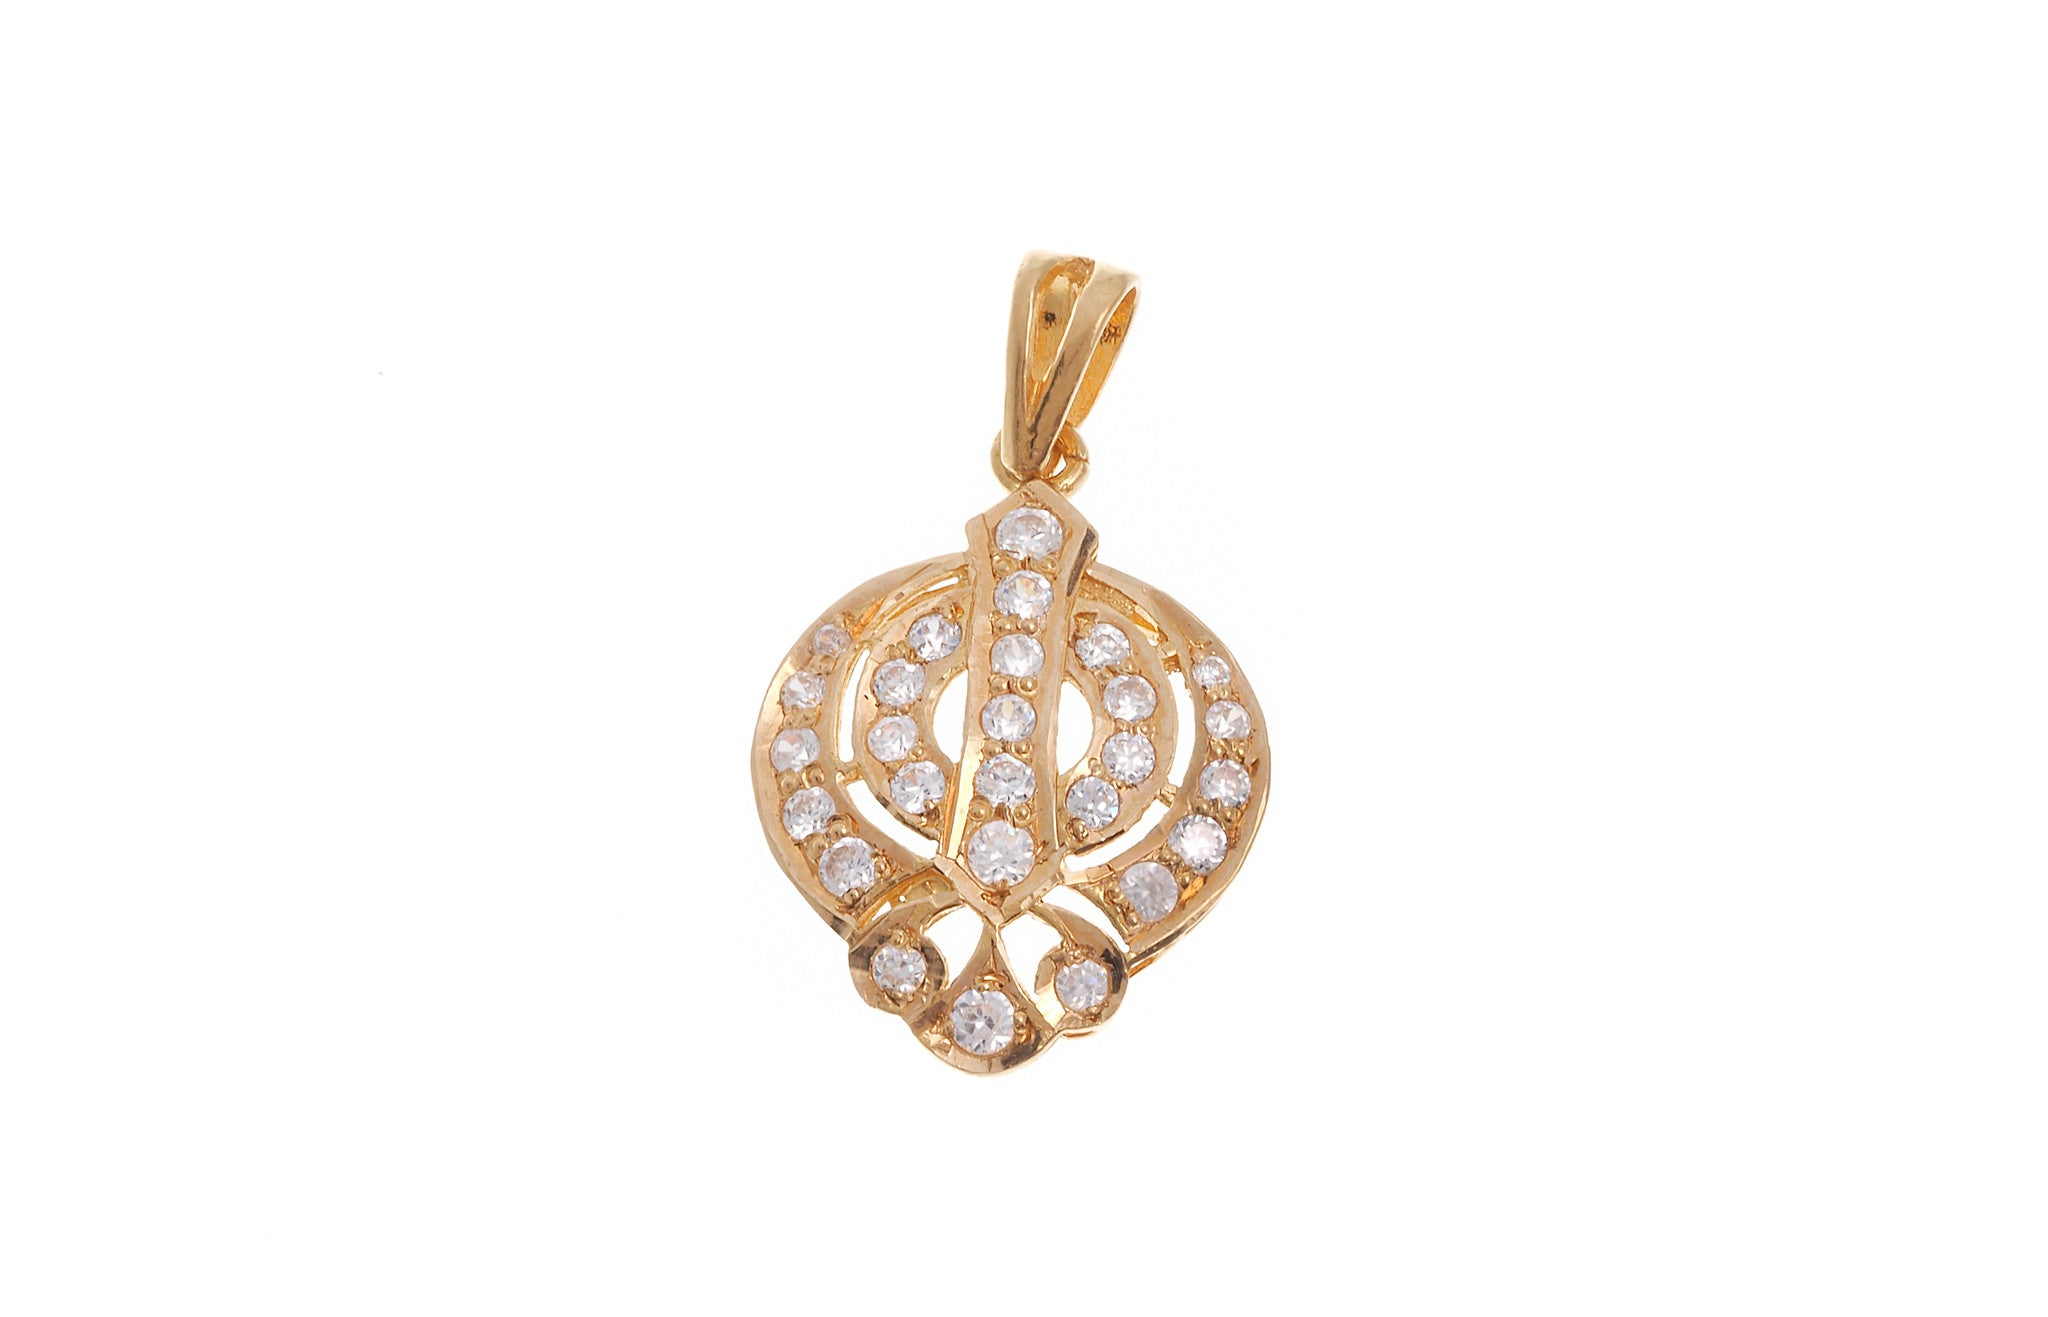 22ct Yellow Gold Cubic Zirconia Khanda Pendant (G5602), Minar Jewellers - 2